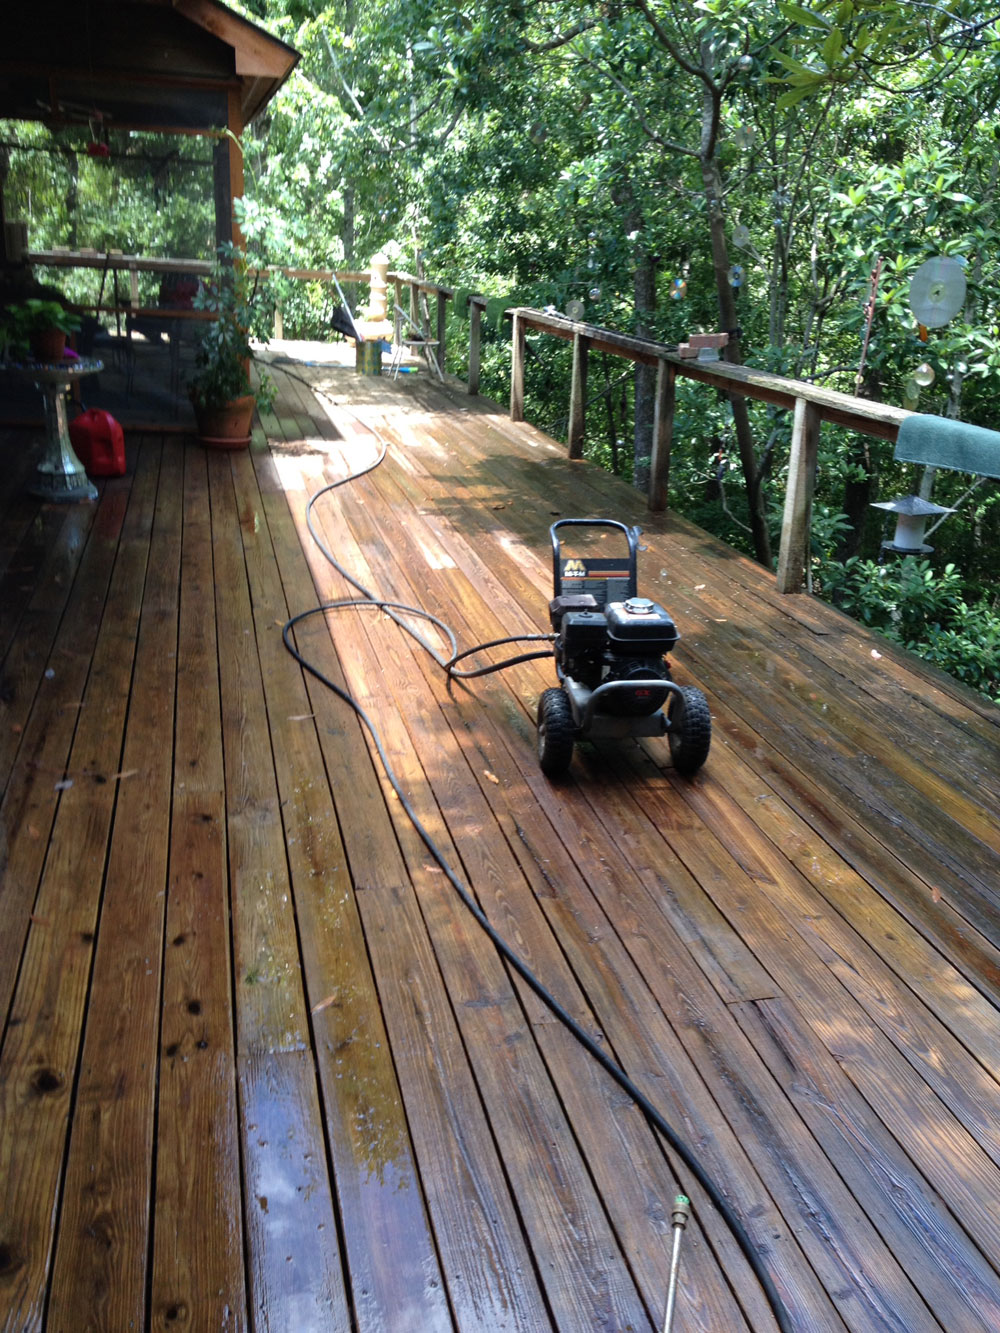 Pressure Washing And Leftover Paint Sticks In The Mud Woodshop Our Despite Bugs Heat Life On Bayou Requires That One Love Outdoors As A Result We Have Acres Of Deck Space Around Home Front Back